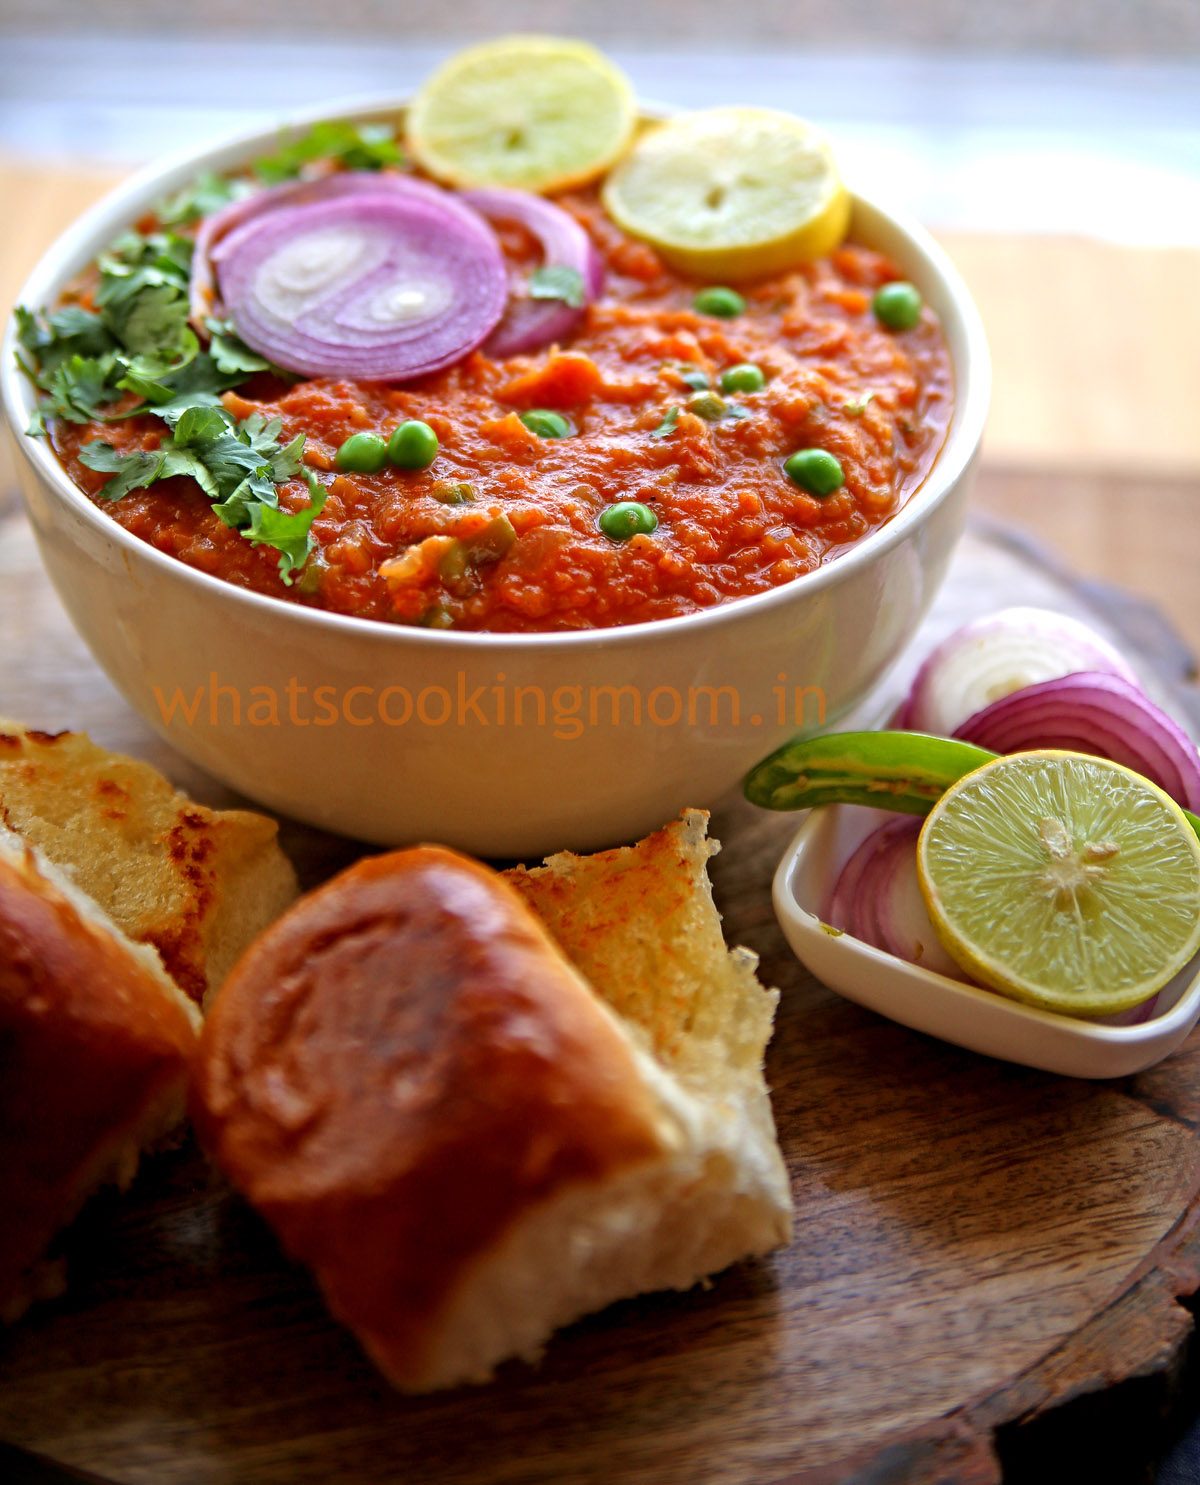 Pav Bhaji - Vegetarian Indian Street food from Mumbai made with mixed vegetables and potatoes